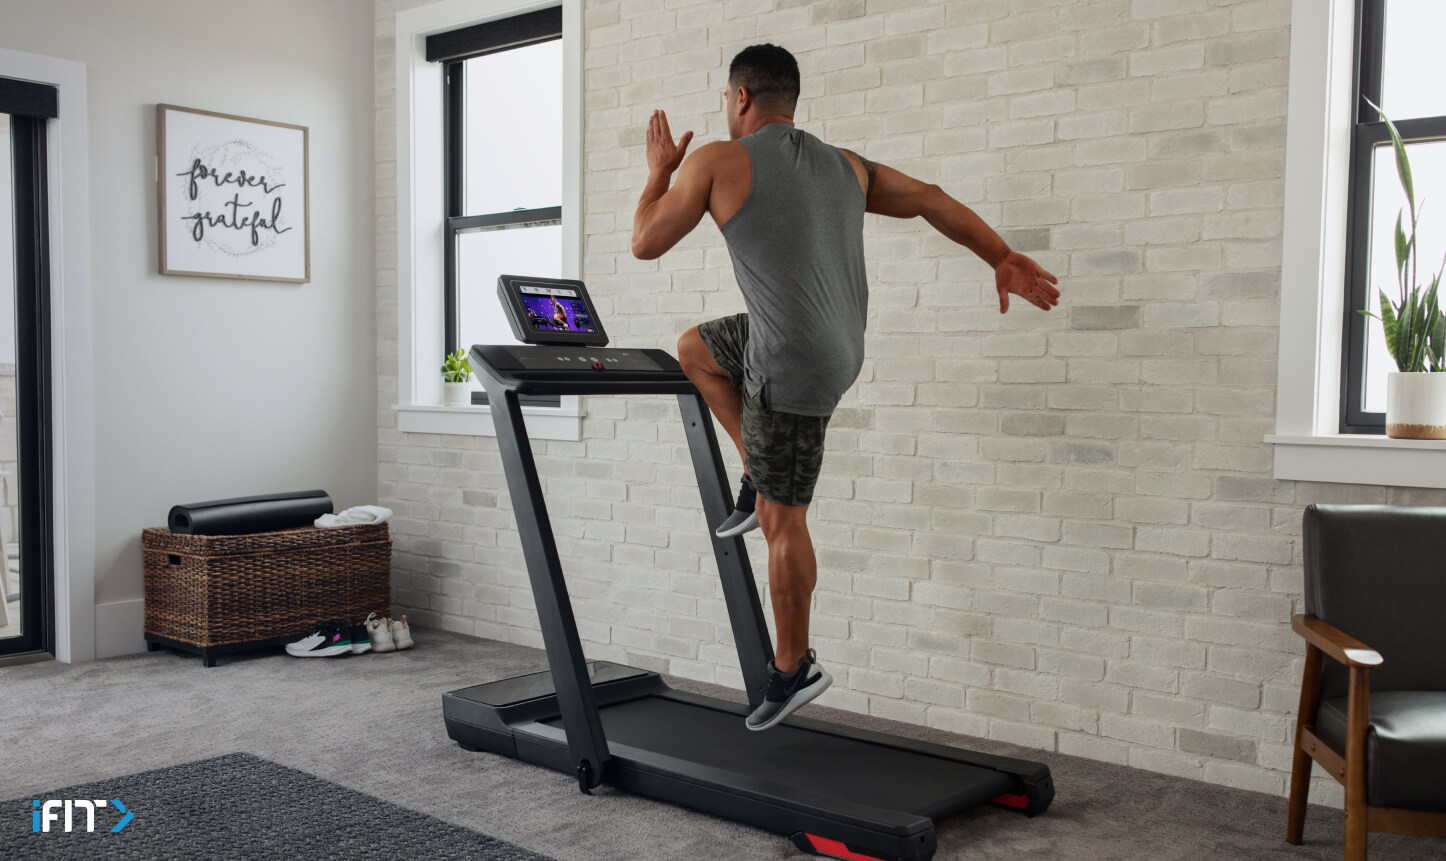 Man completes an iFIT HIIT exercise